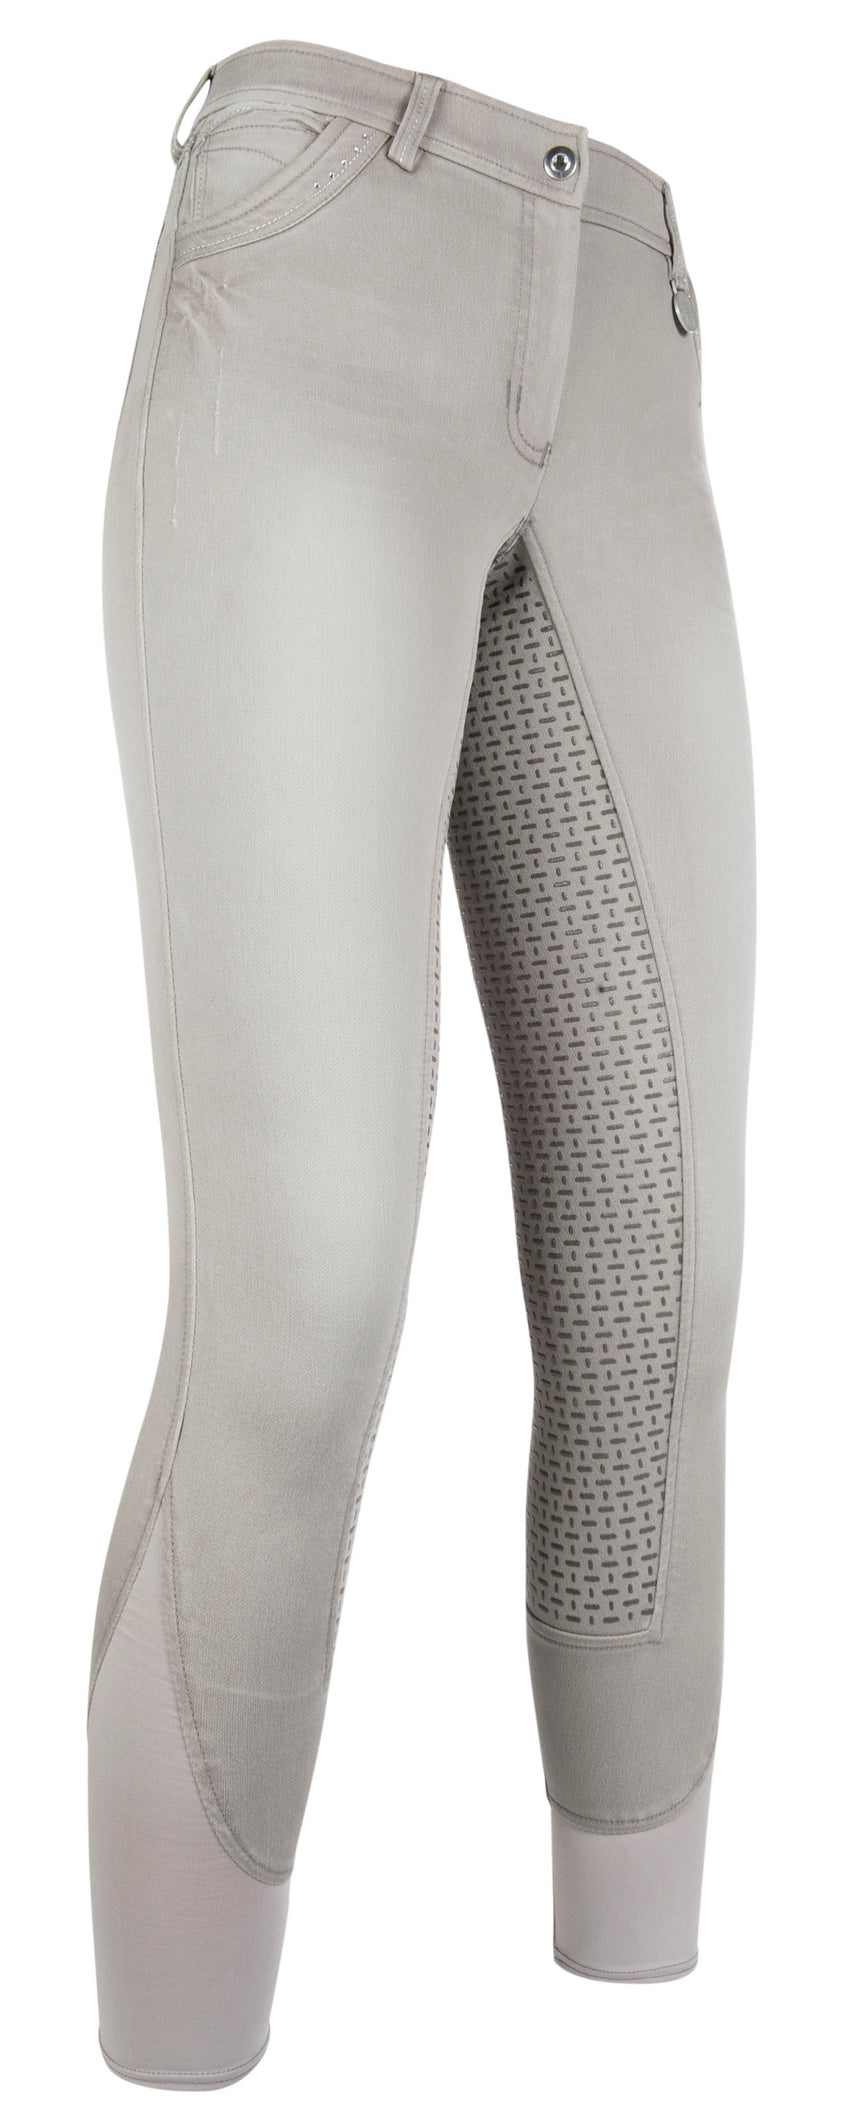 Breeches leggings